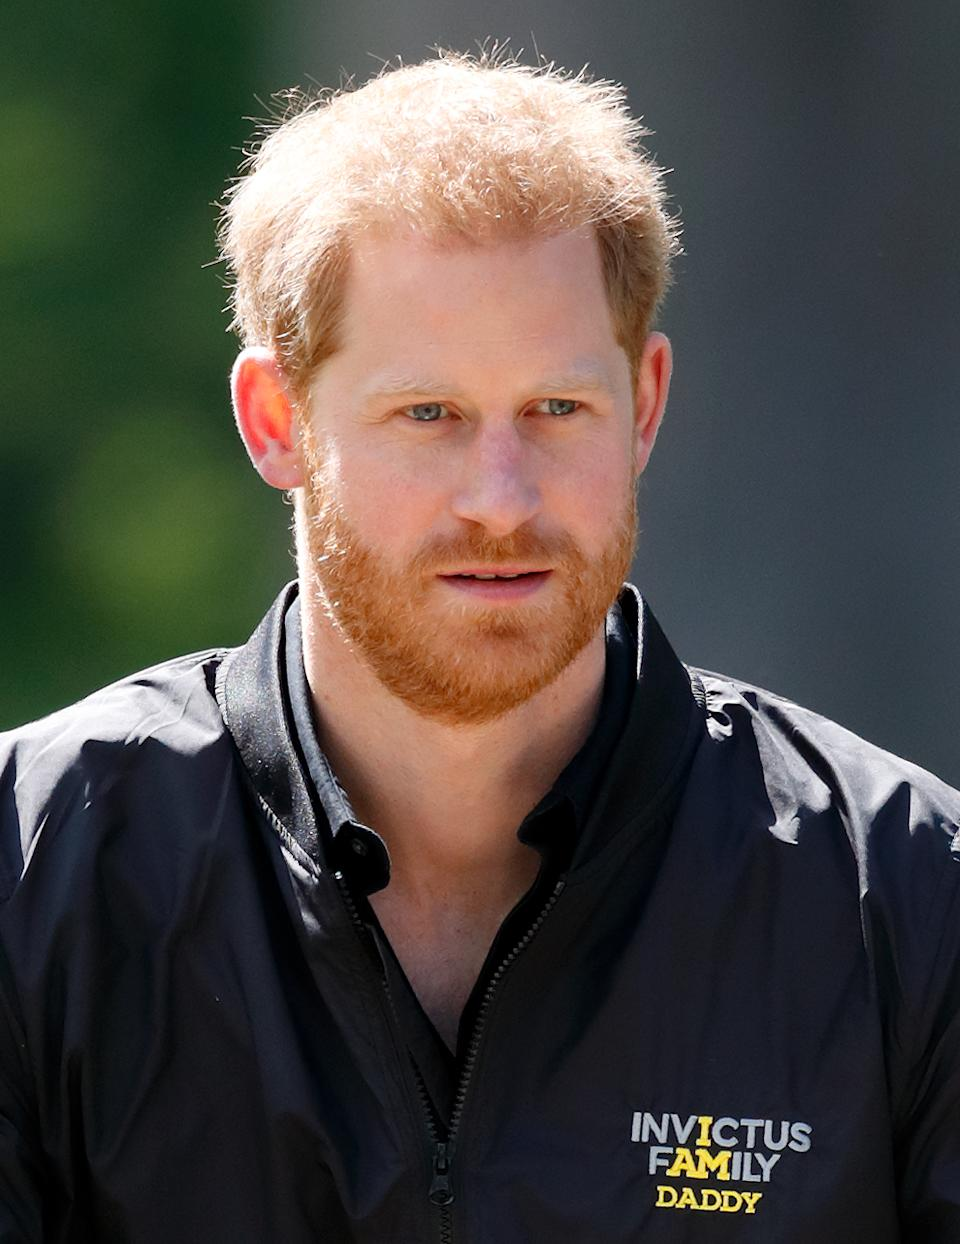 THE HAGUE, NETHERLANDS - MAY 09: (EMBARGOED FOR PUBLICATION IN UK NEWSPAPERS UNTIL 24 HOURS AFTER CREATE DATE AND TIME) Prince Harry, Duke of Sussex visits Sportcampus Zuiderpark as part of a programme of events to mark the official launch of the Invictus Games The Hague 2020 on May 9, 2019 in The Hague, Netherlands. (Photo by Max Mumby/Indigo/Getty Images)